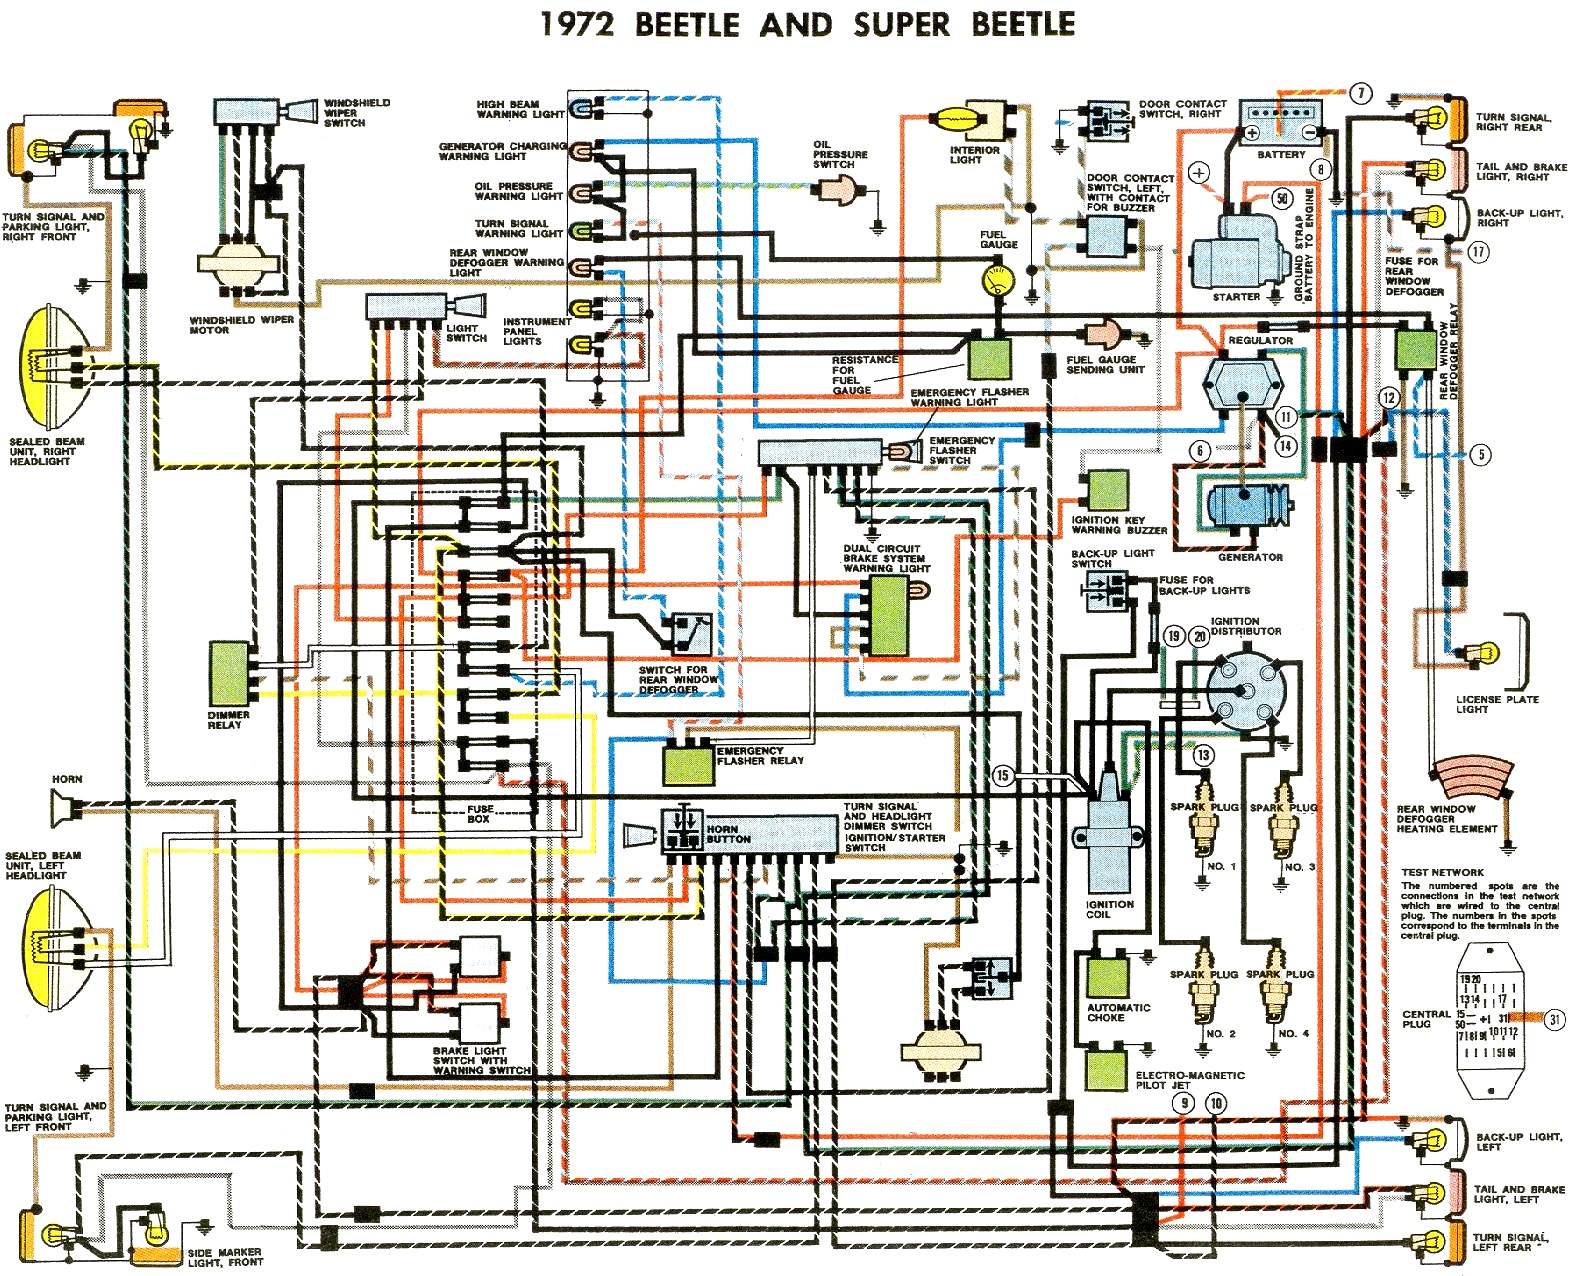 Vw Beetle Wiring Diagram : Beetle wiring diagram thegoldenbug